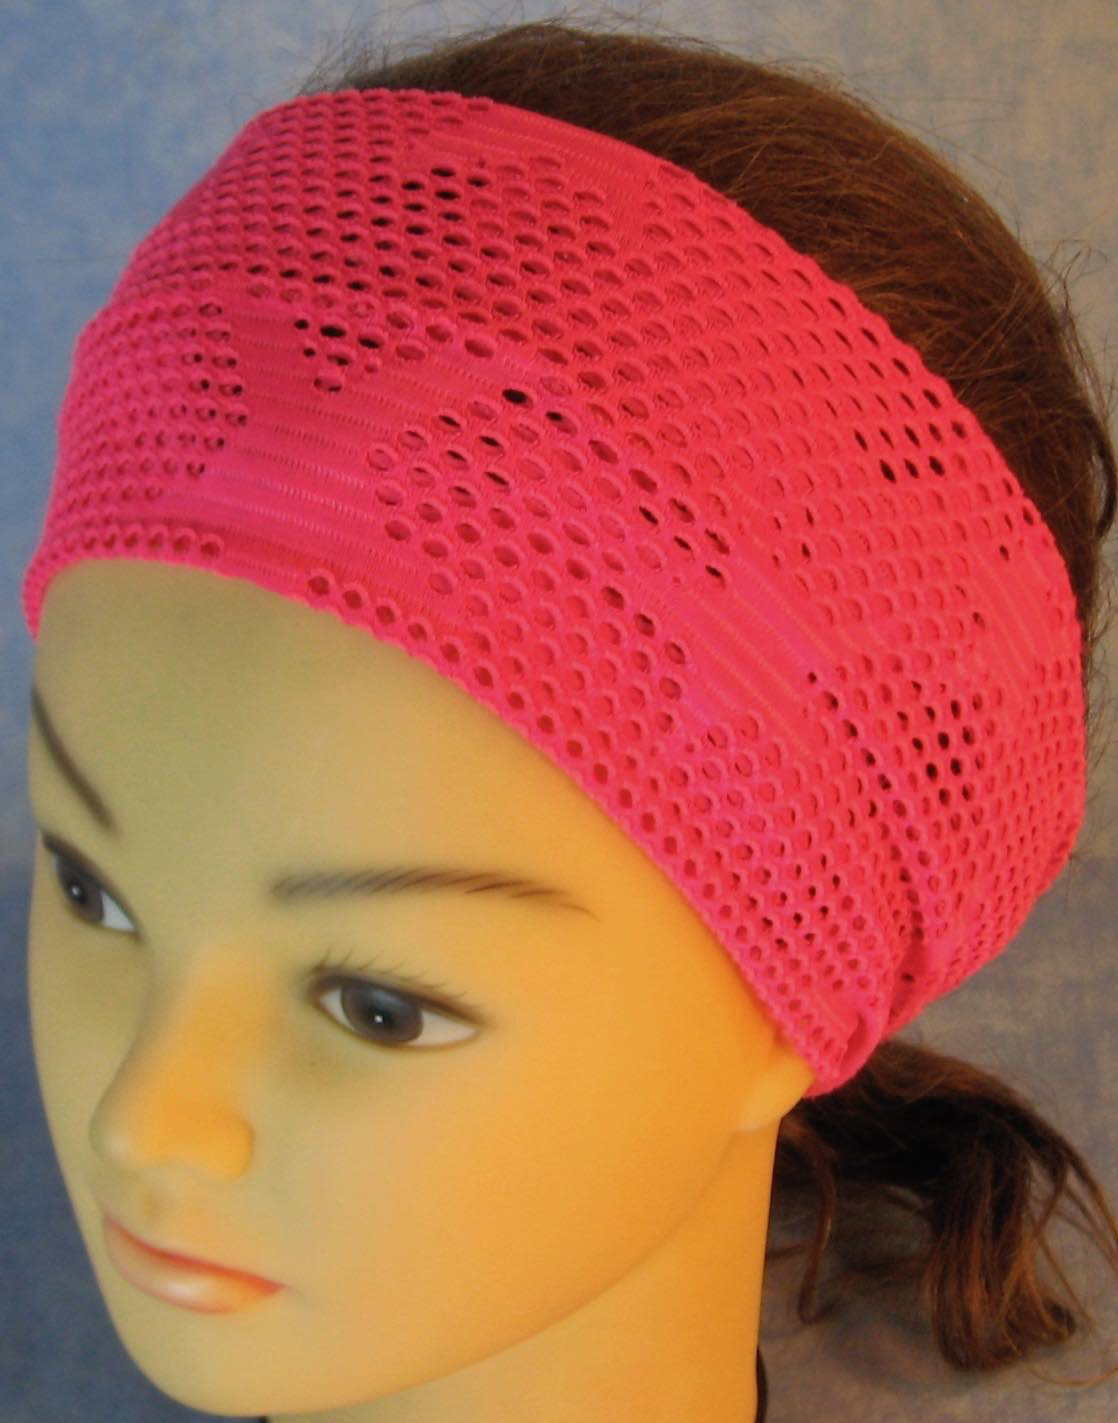 Headband-Pink Fishnet with Stars Knit-Youth L-XL